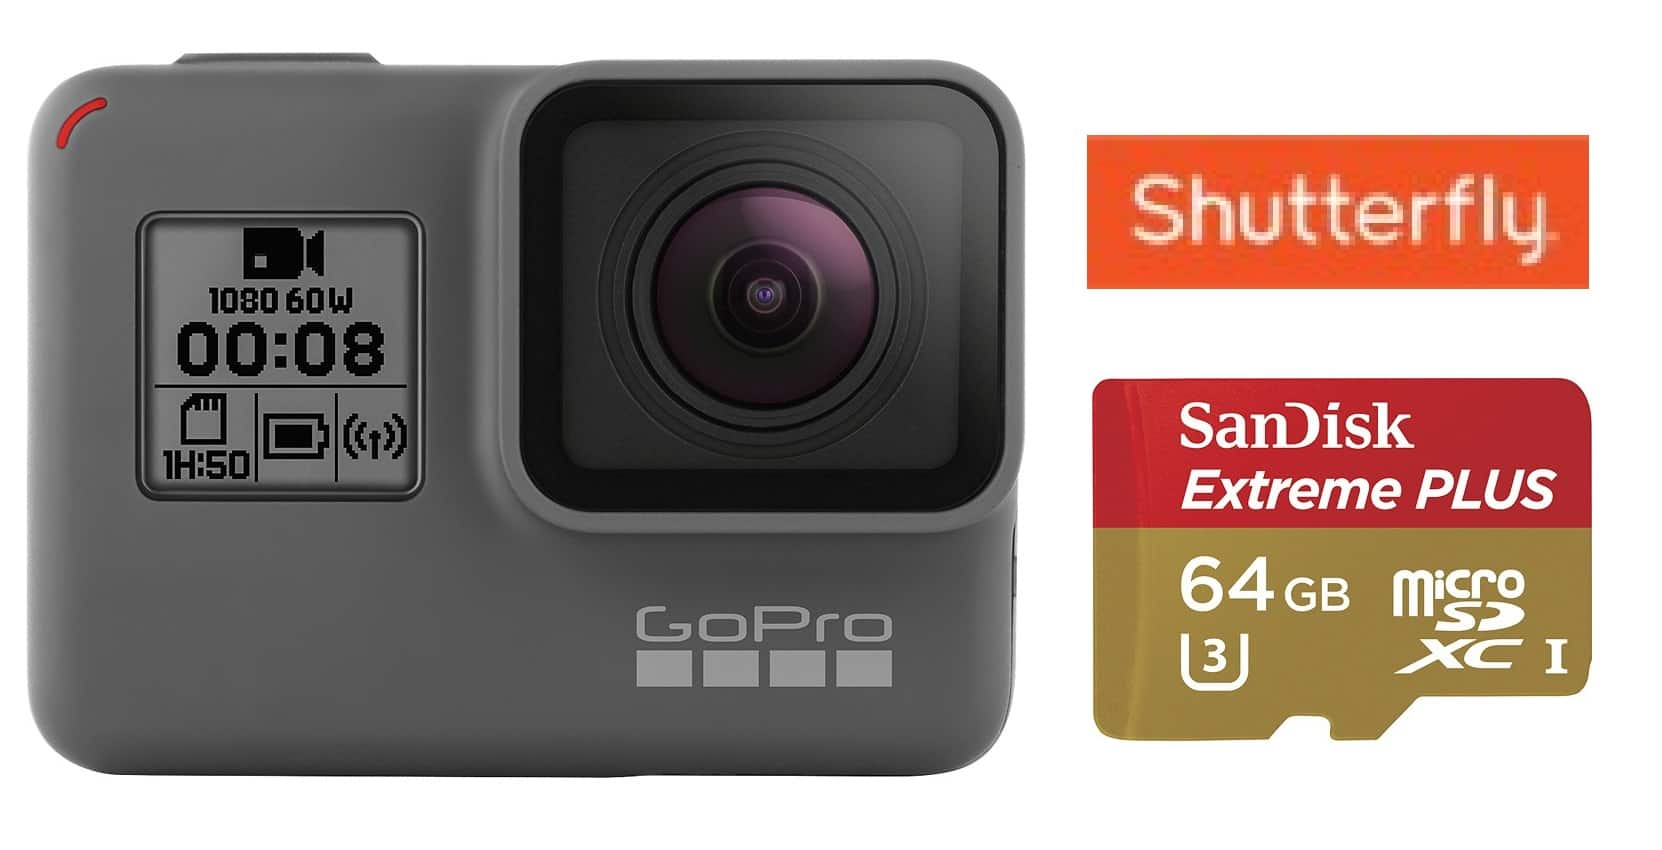 GoPro HERO5 Black 4K Action Camera + 64GB Sandisk Extreme Plus MicroSD Card  $400 & More + Free S&H